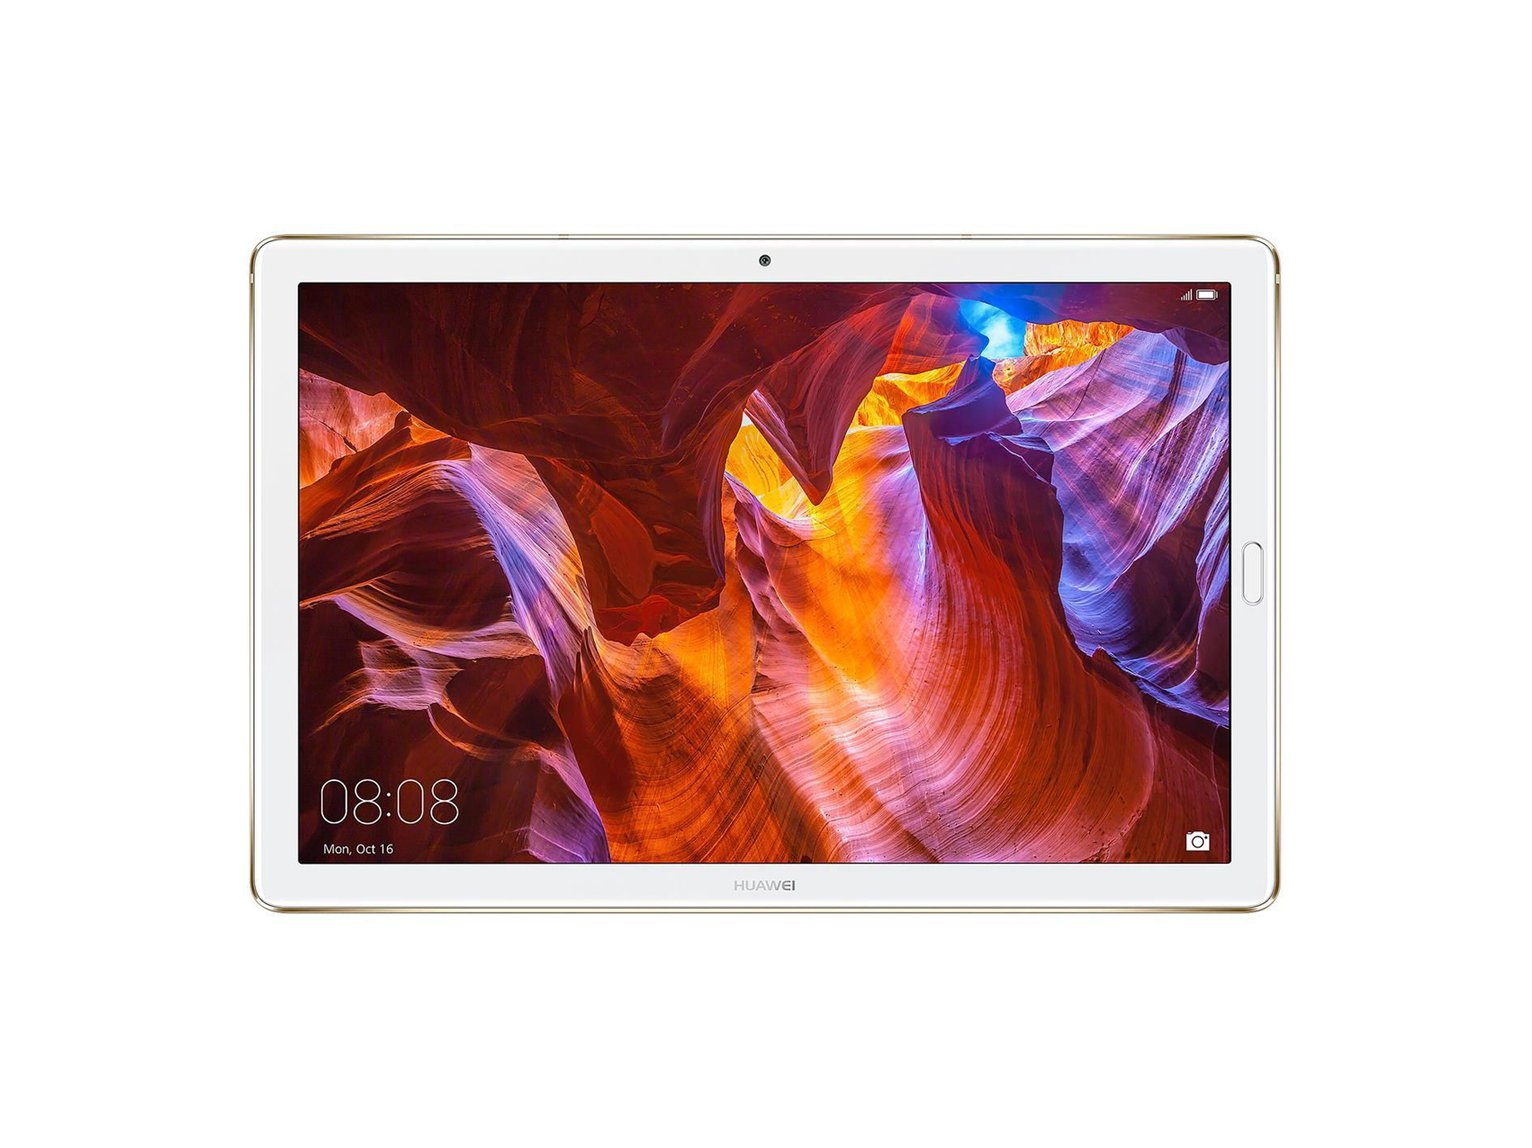 Huawei MediaPad M5-10 Pro CMR-W19 HiSilicon Kirin 960 with 4 GB Memory 64 GB Flash Storage 10.8″ 2560 x 1600 Tablet PC Android 8.0 with Stylus